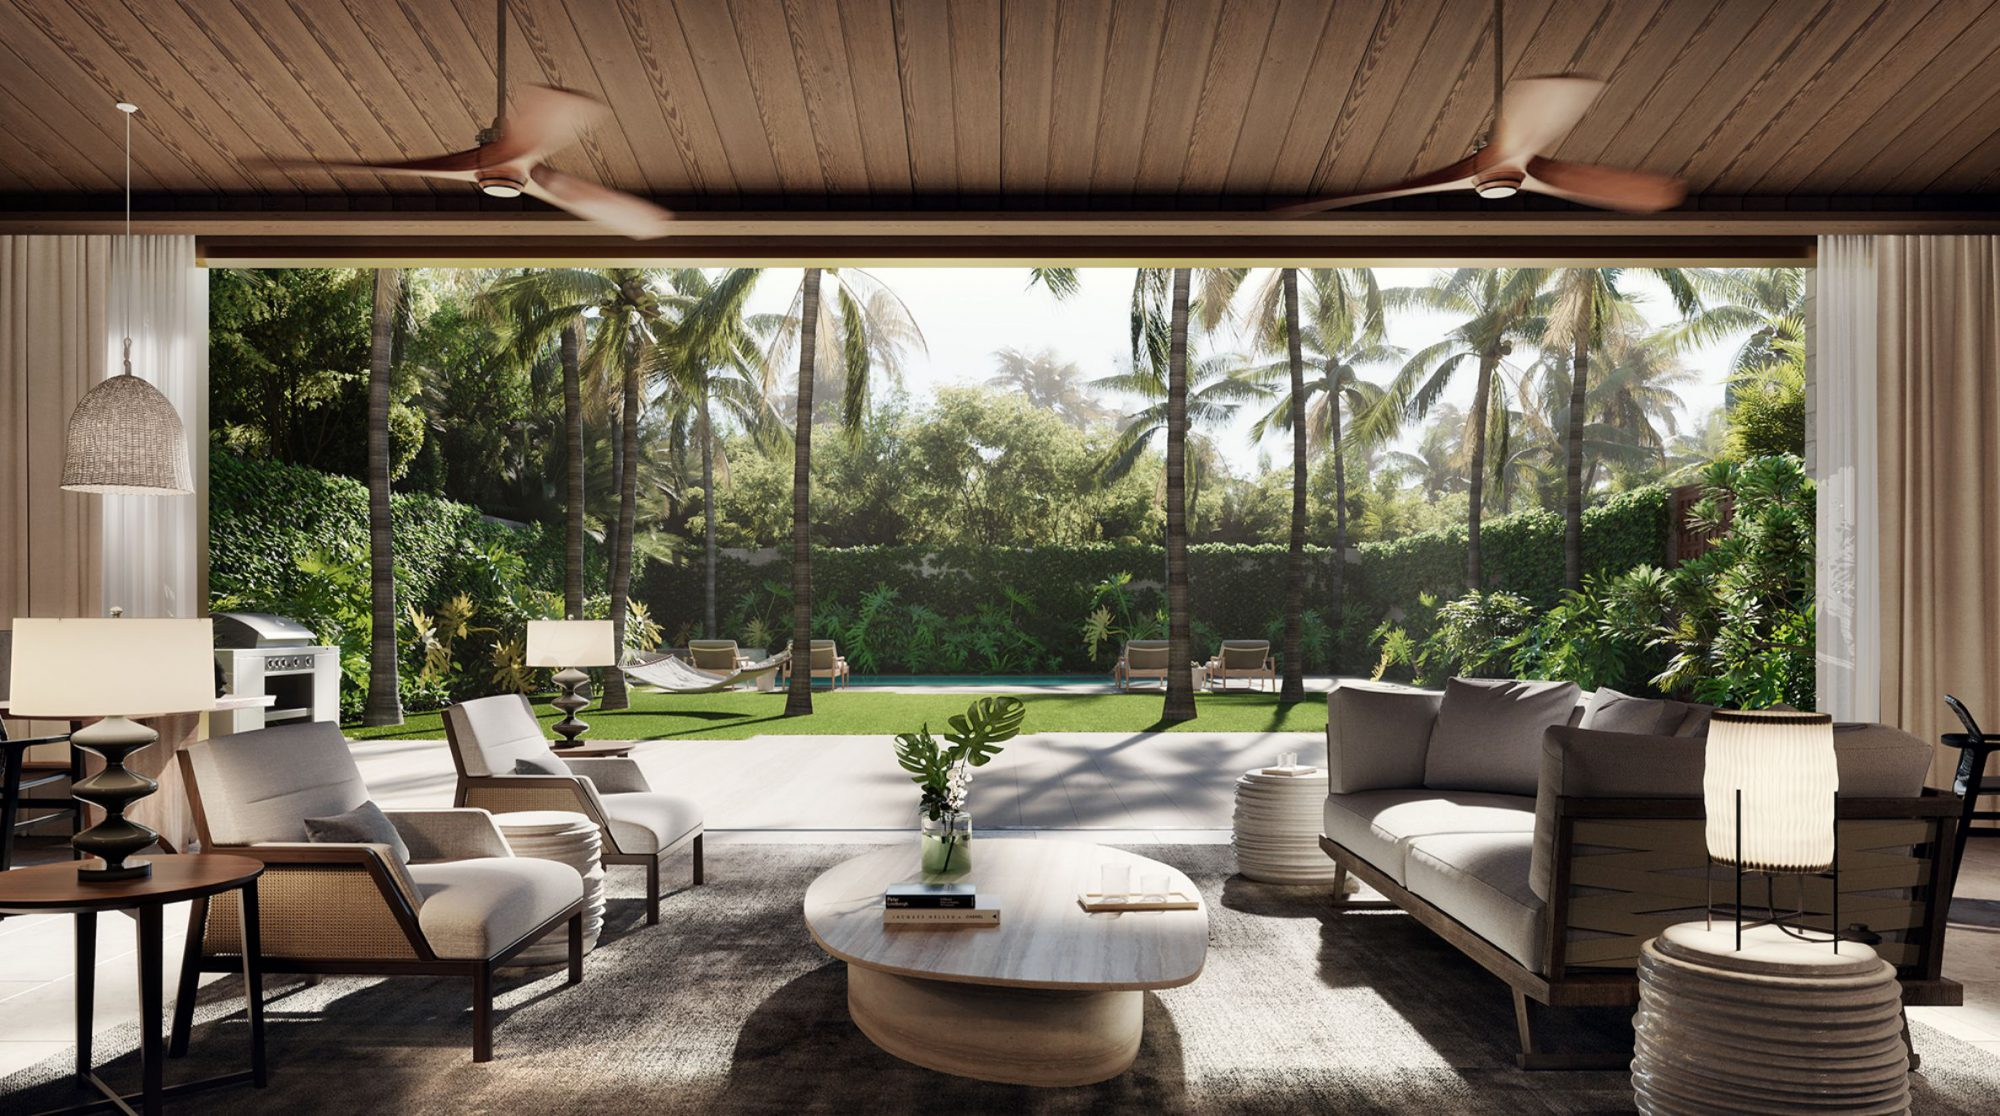 The indoor seating in the Lauhala Pool House amenity space